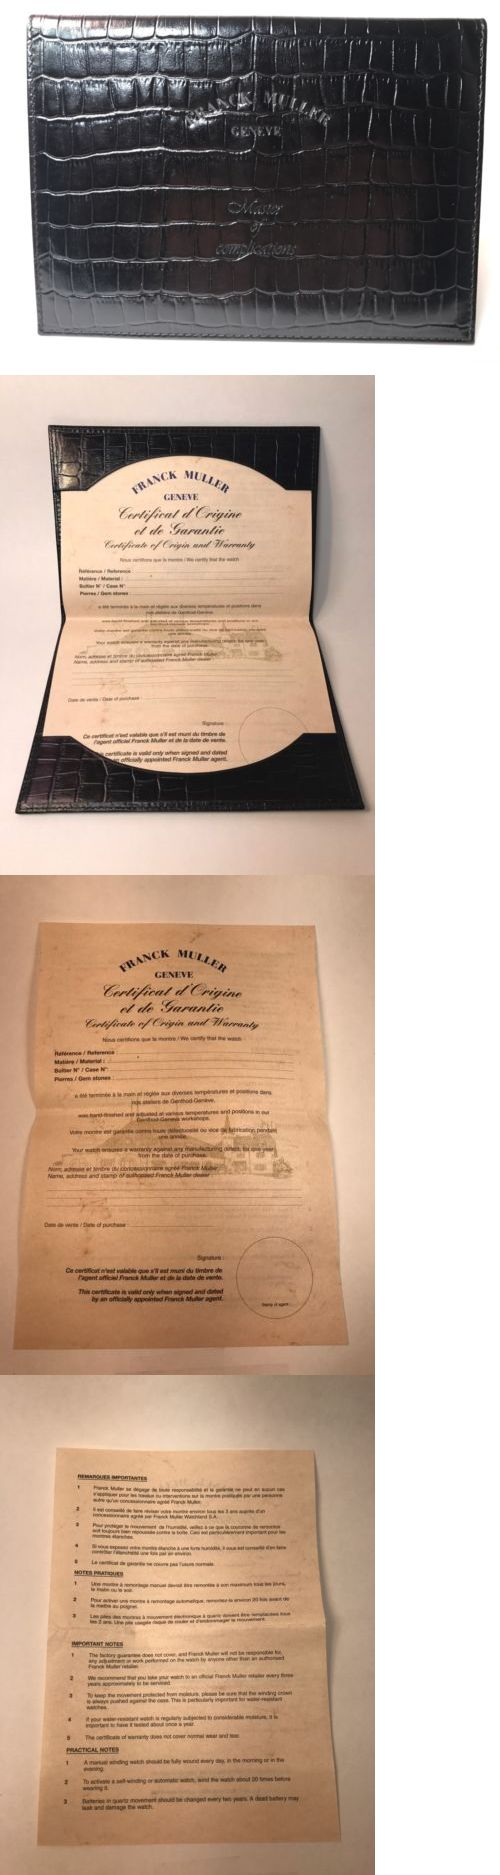 Manuals and Guides 93720: Franck Muller Crazy Hours Certificate Of Origin And Warranty -> BUY IT NOW ONLY: $450.99 on eBay!